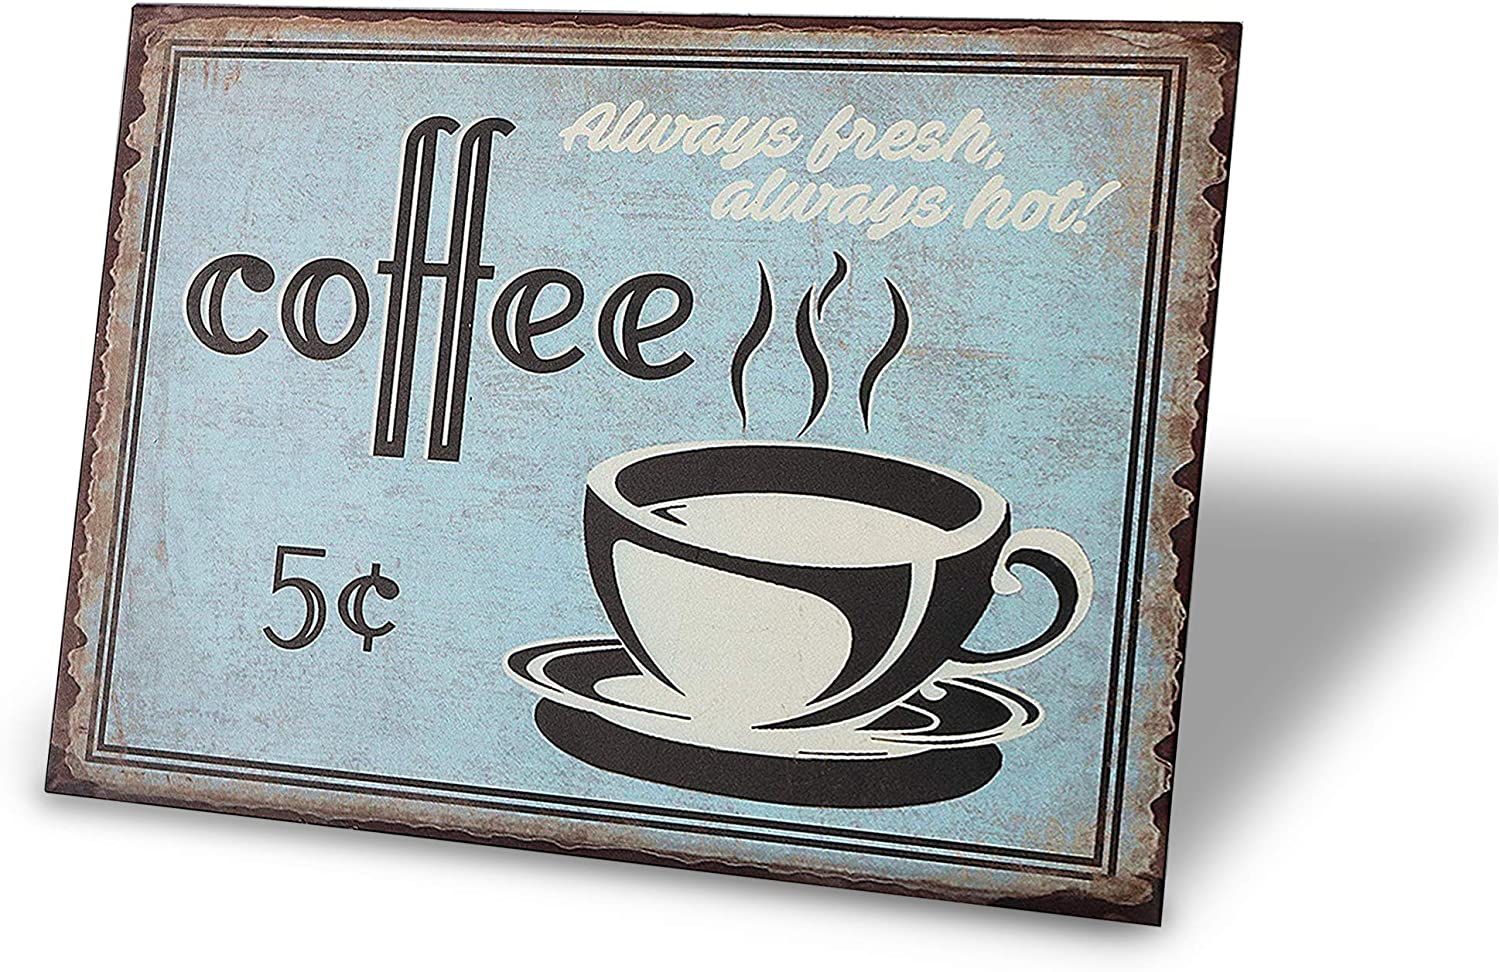 TINSIGNS Coffee for 5 Cents Menu Funny Bar Pub Garage Diner Cafe Home Wall Decor Retro Vintage Sign 8 X 12Inch